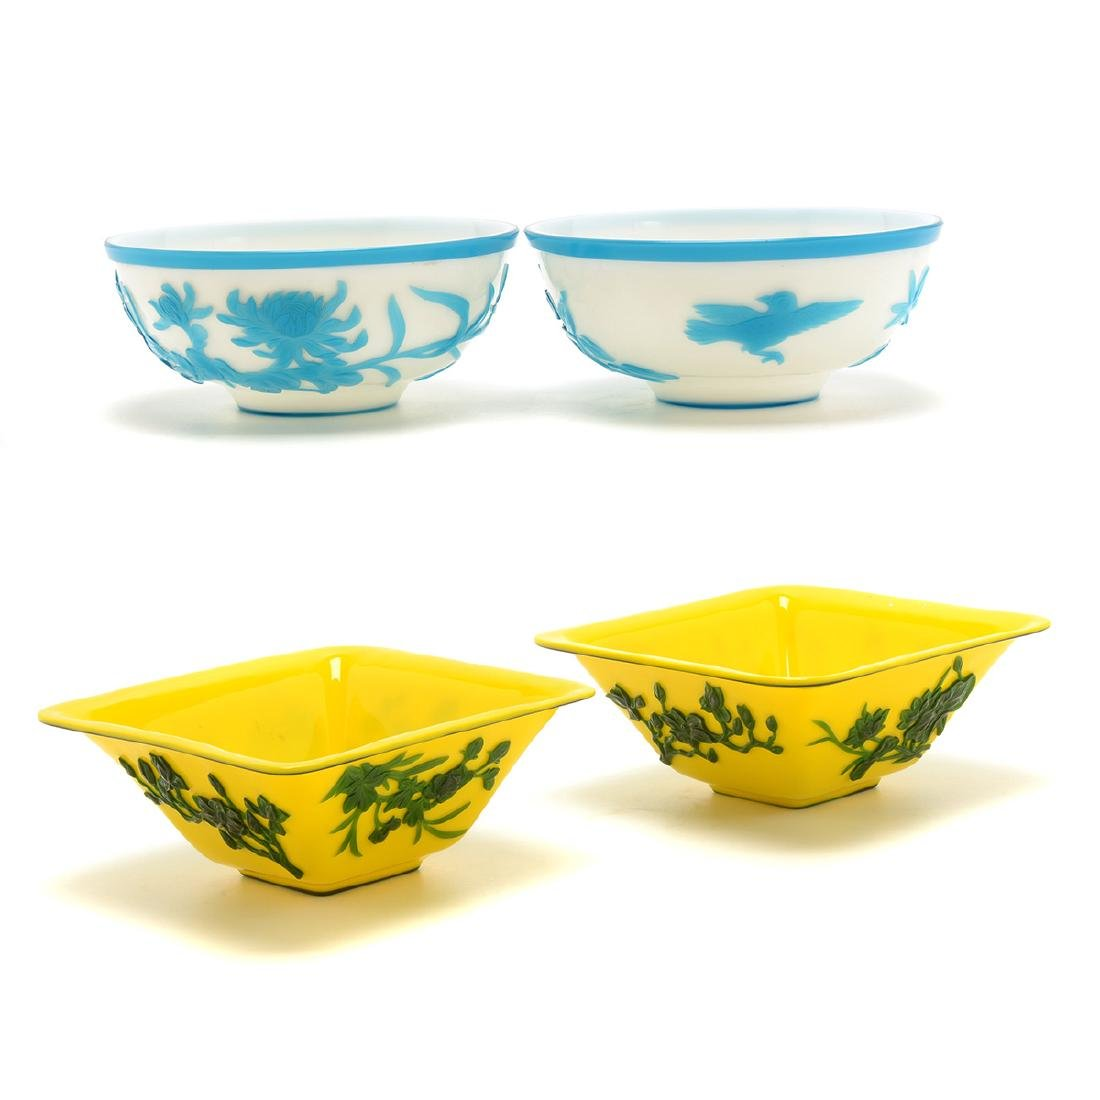 Two Pairs of Overlay Glass Bowls